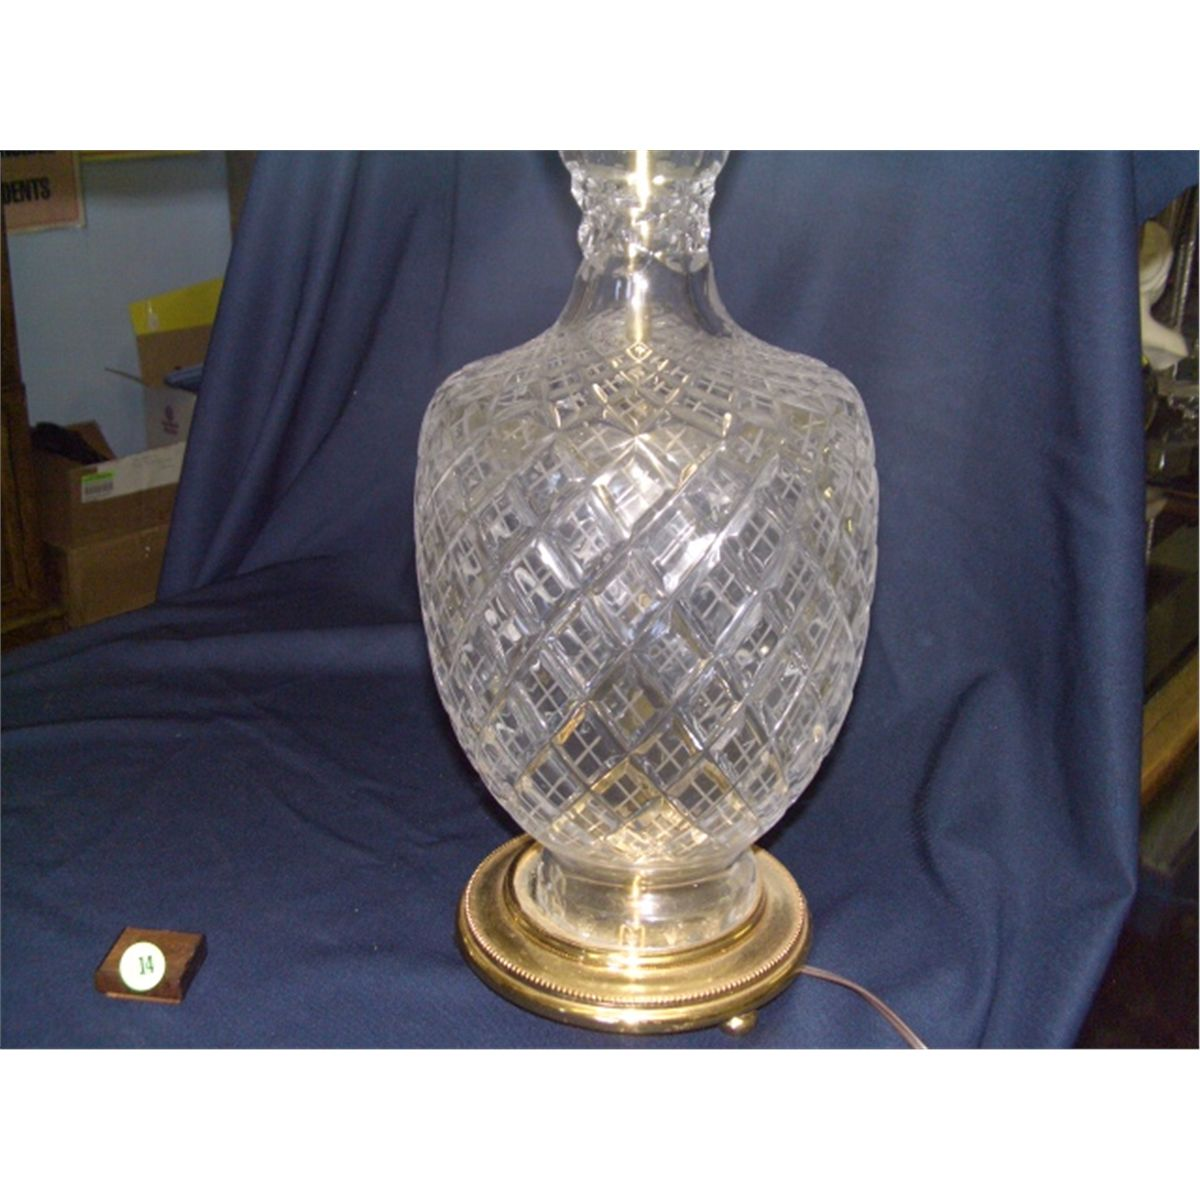 2 piece matching cut crystal glass table lamps waterford no marks 2 piece matching cut crystal glass table lamps waterford no marks found 29 aloadofball Gallery